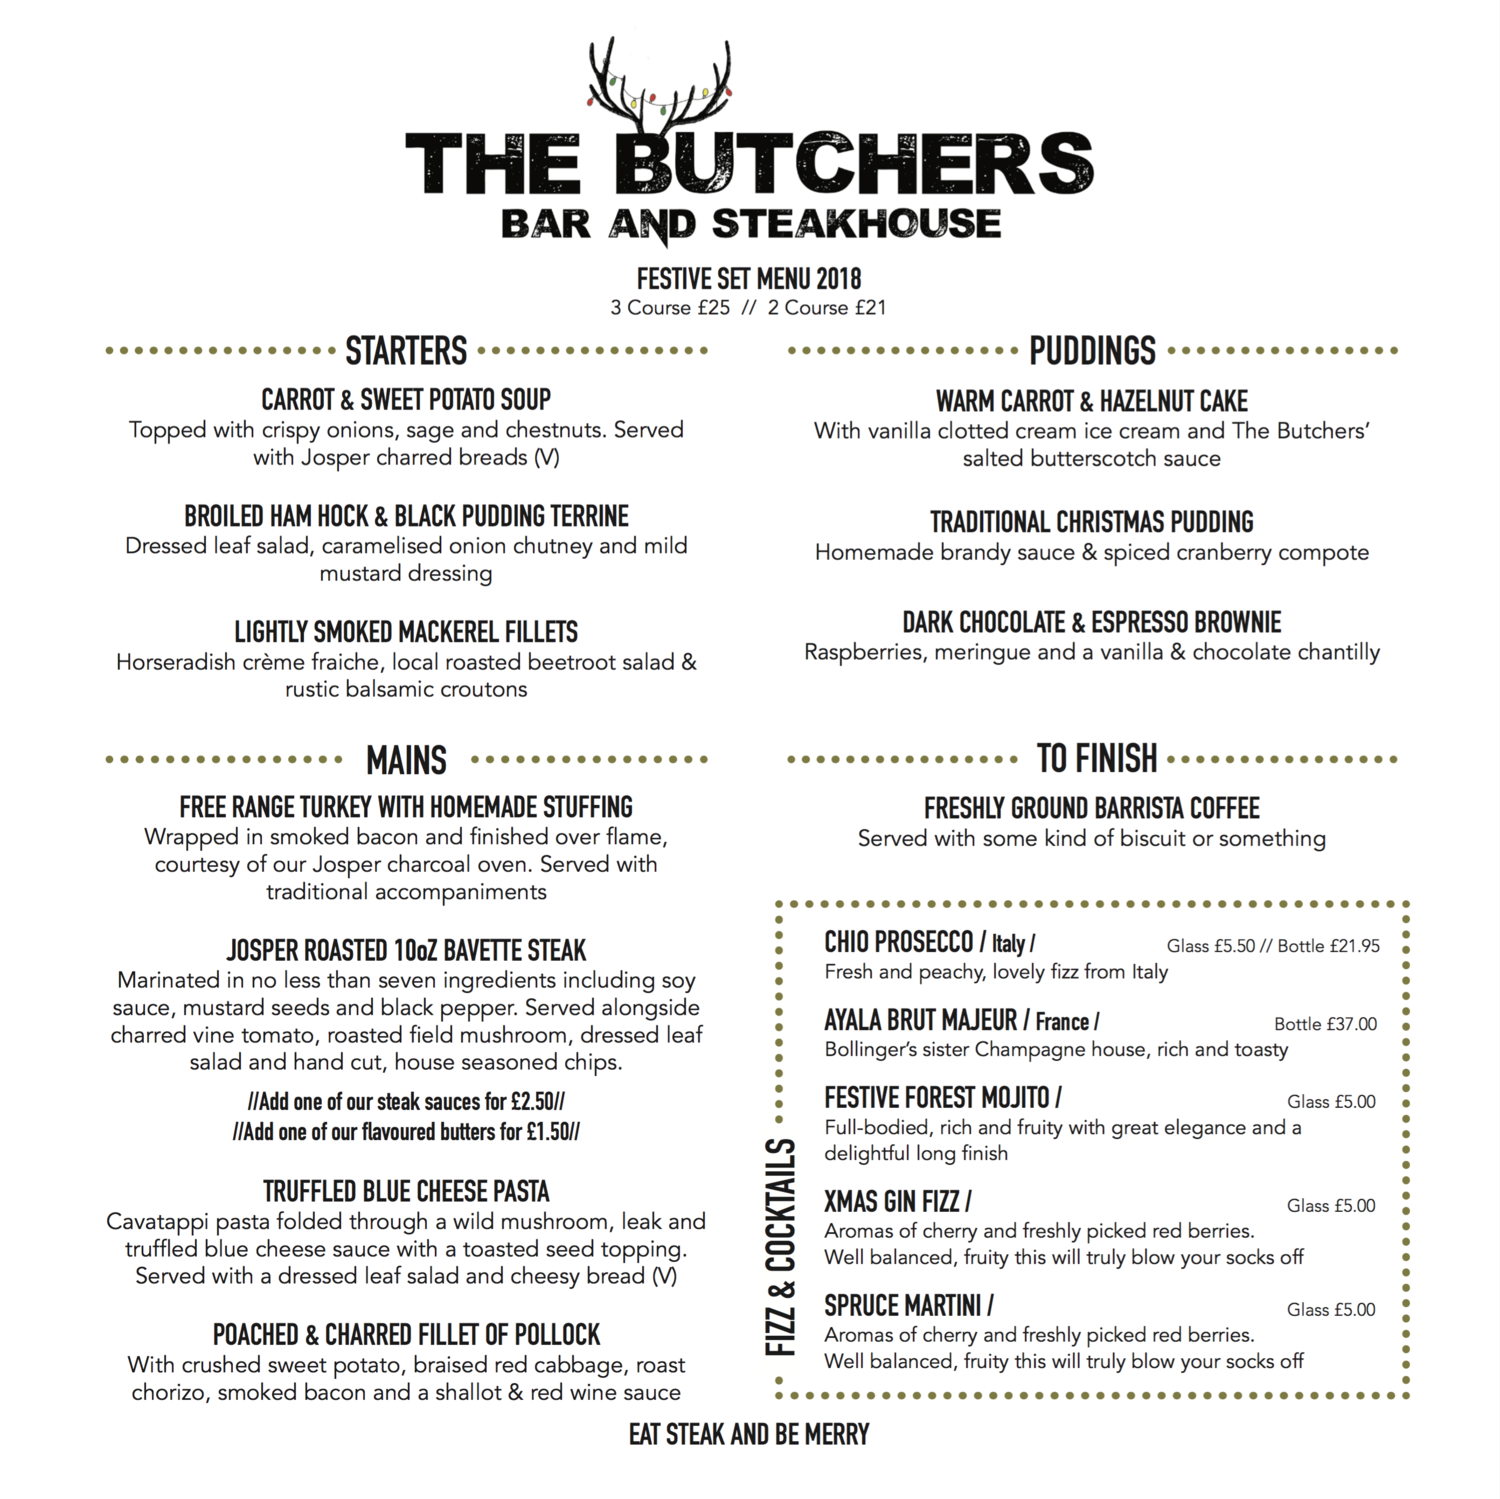 The Butchers Bar and Steakhouse